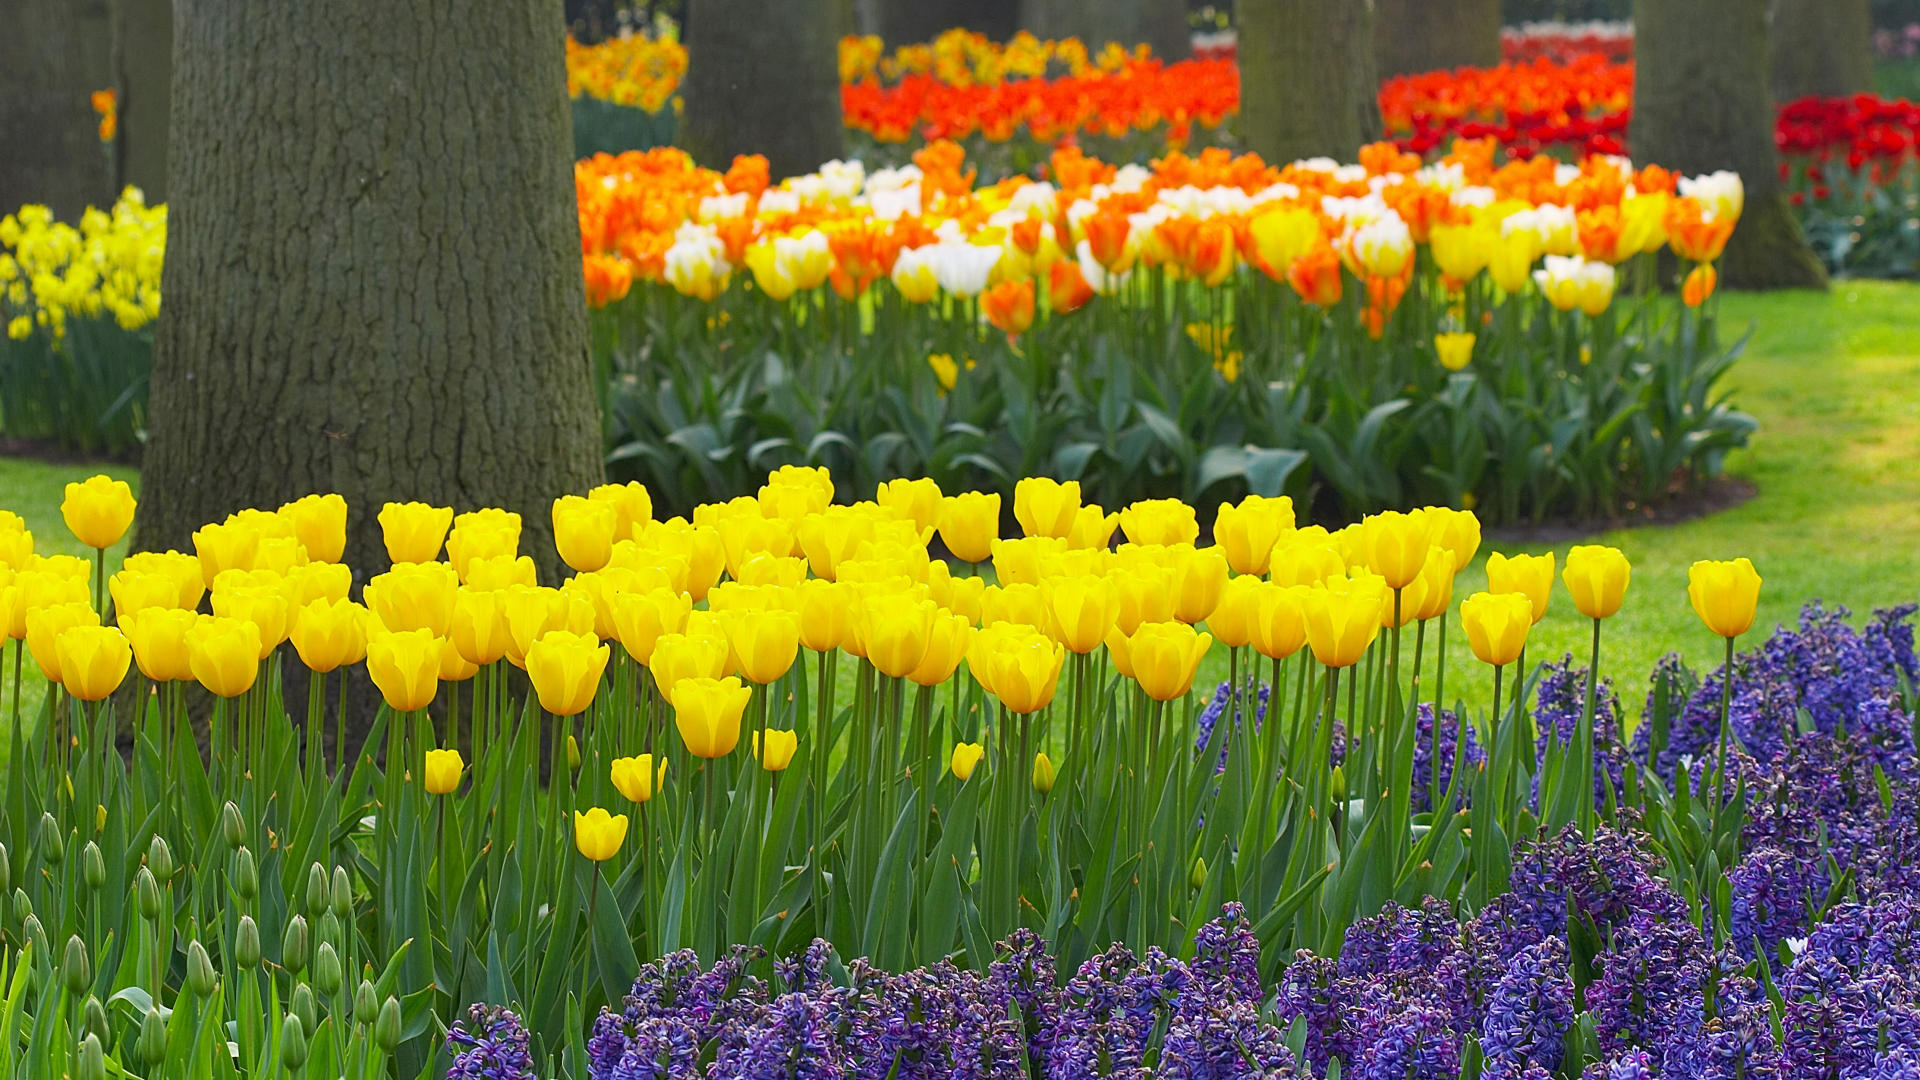 Spring Garden Wallpaper | Wallcapture.com Wallpaper